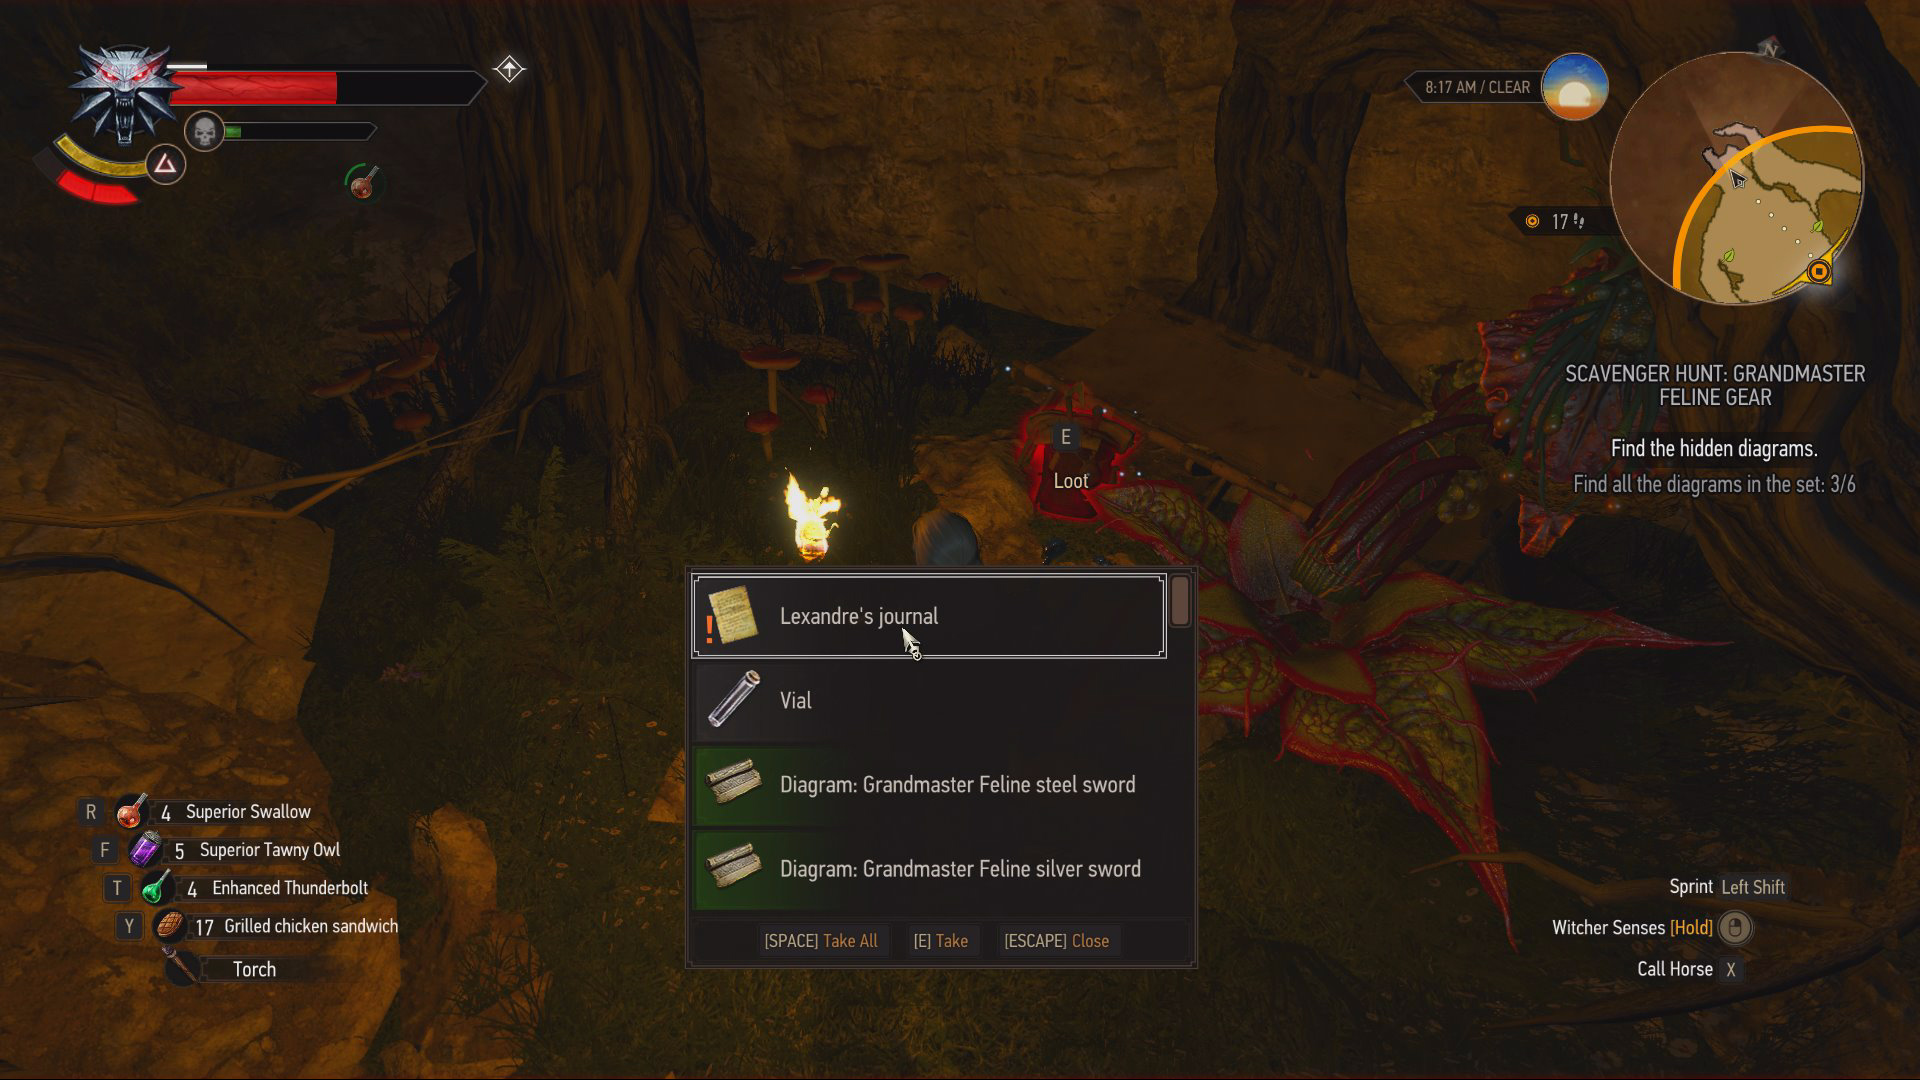 How to Get the Grandmaster Feline Gear in The Witcher 3